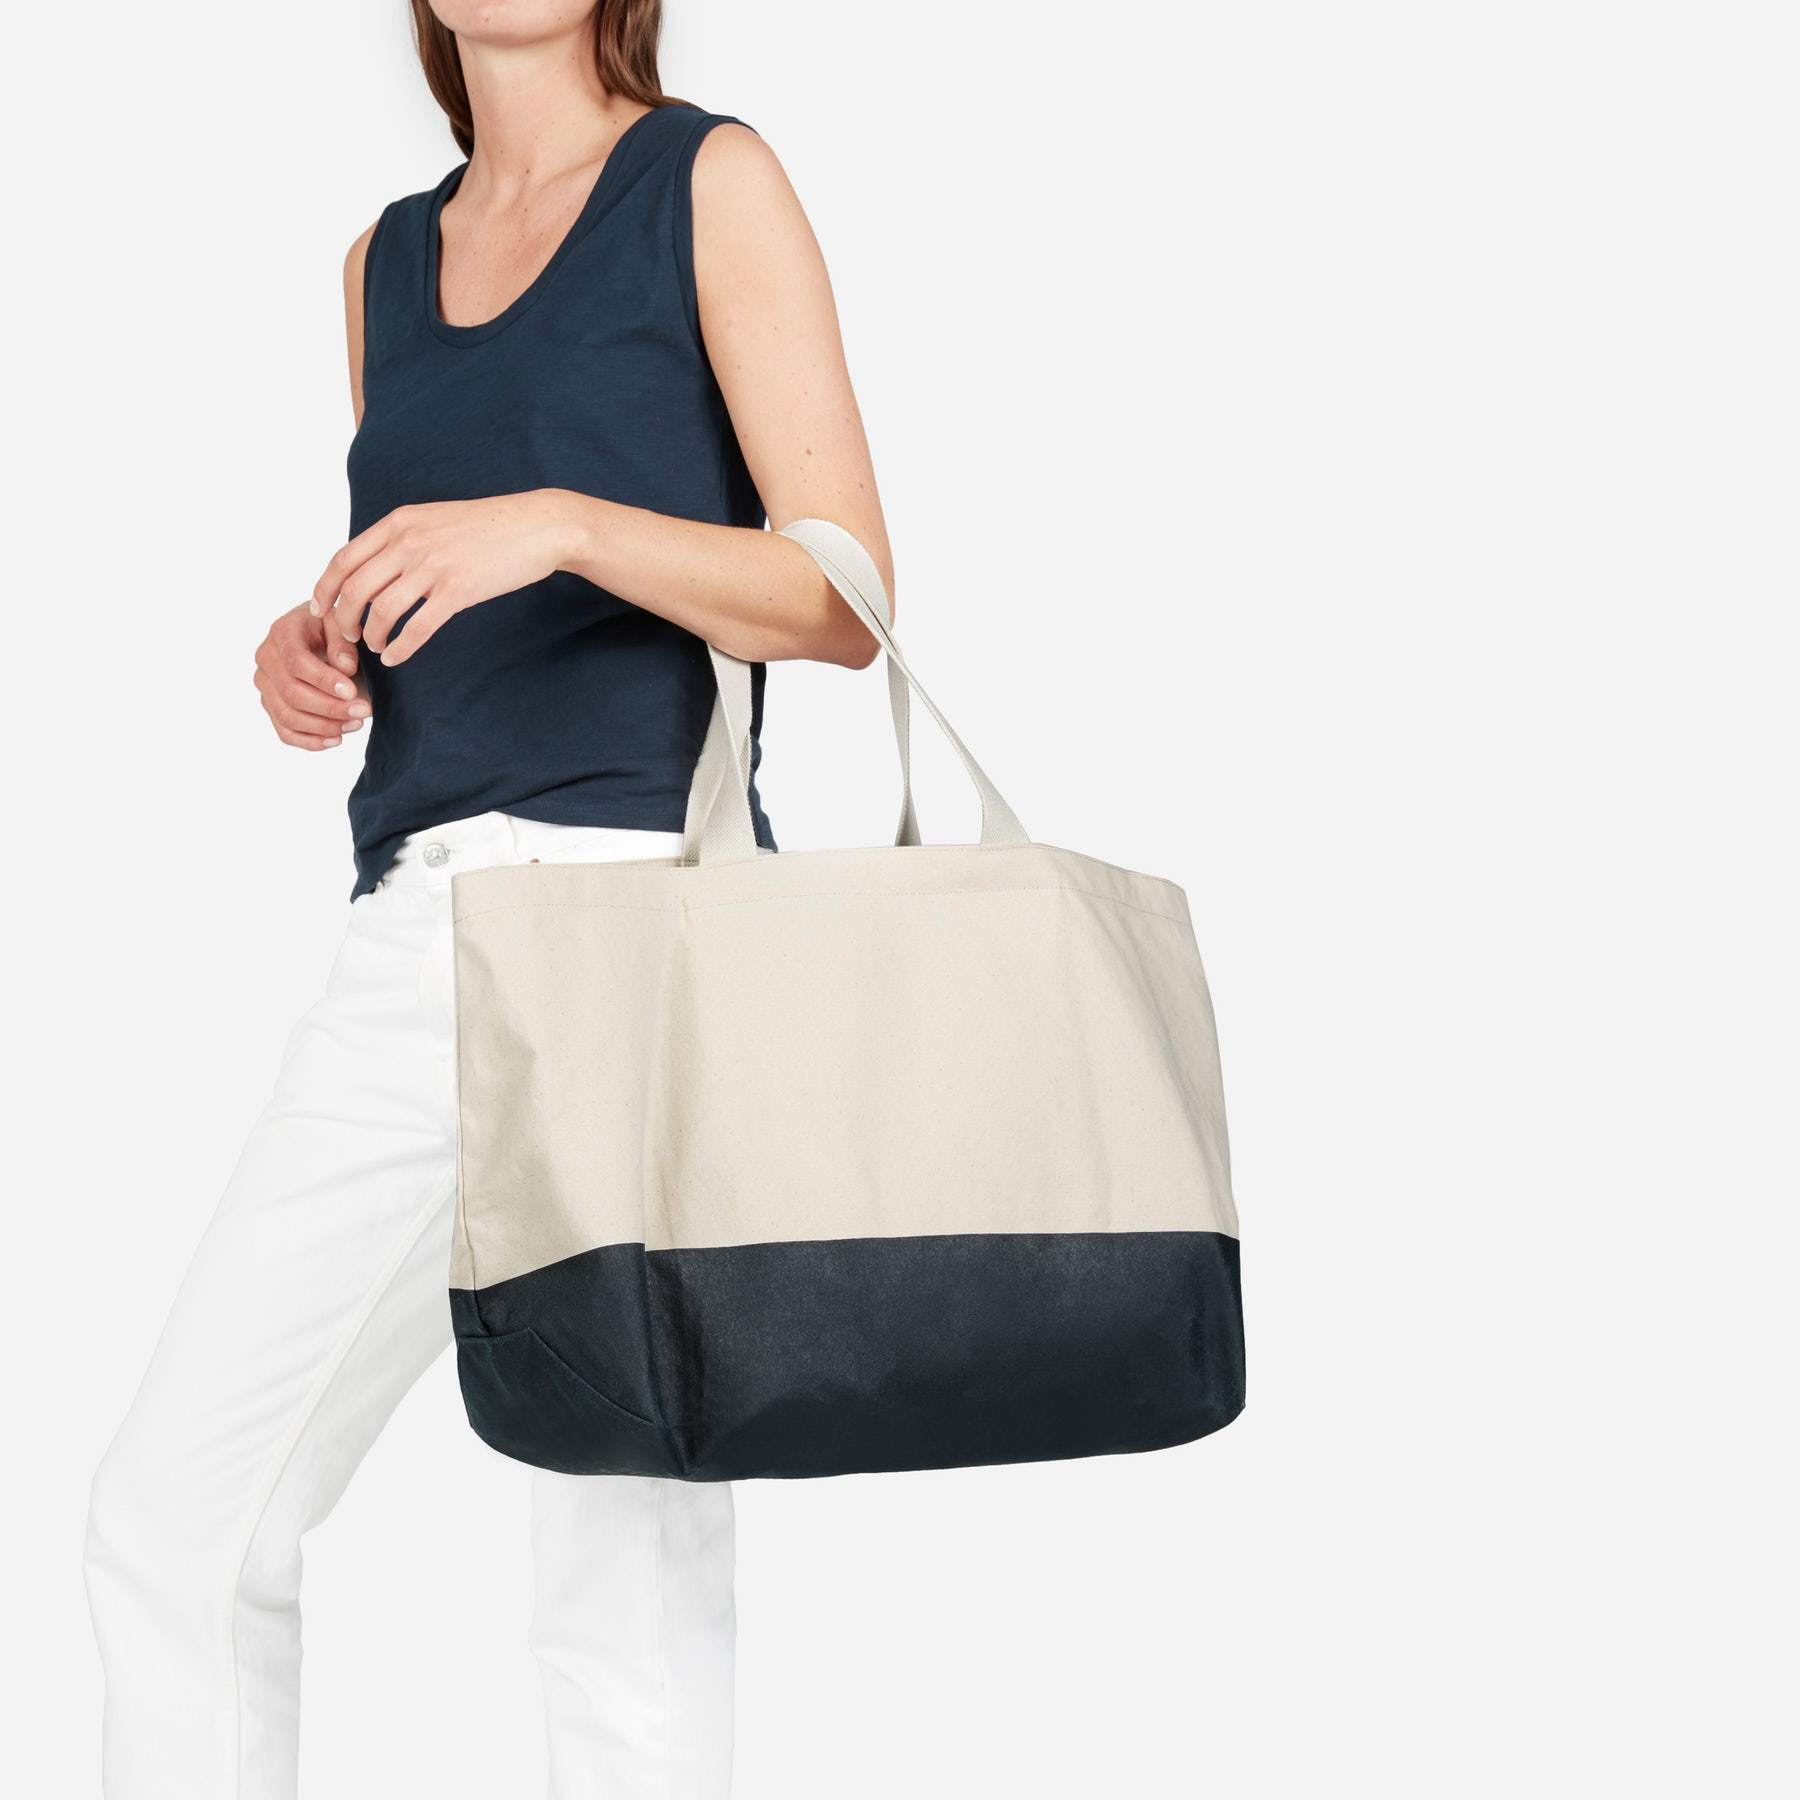 【EVERLANE】●日本未入荷●大人気●The Beach Canvas Tote